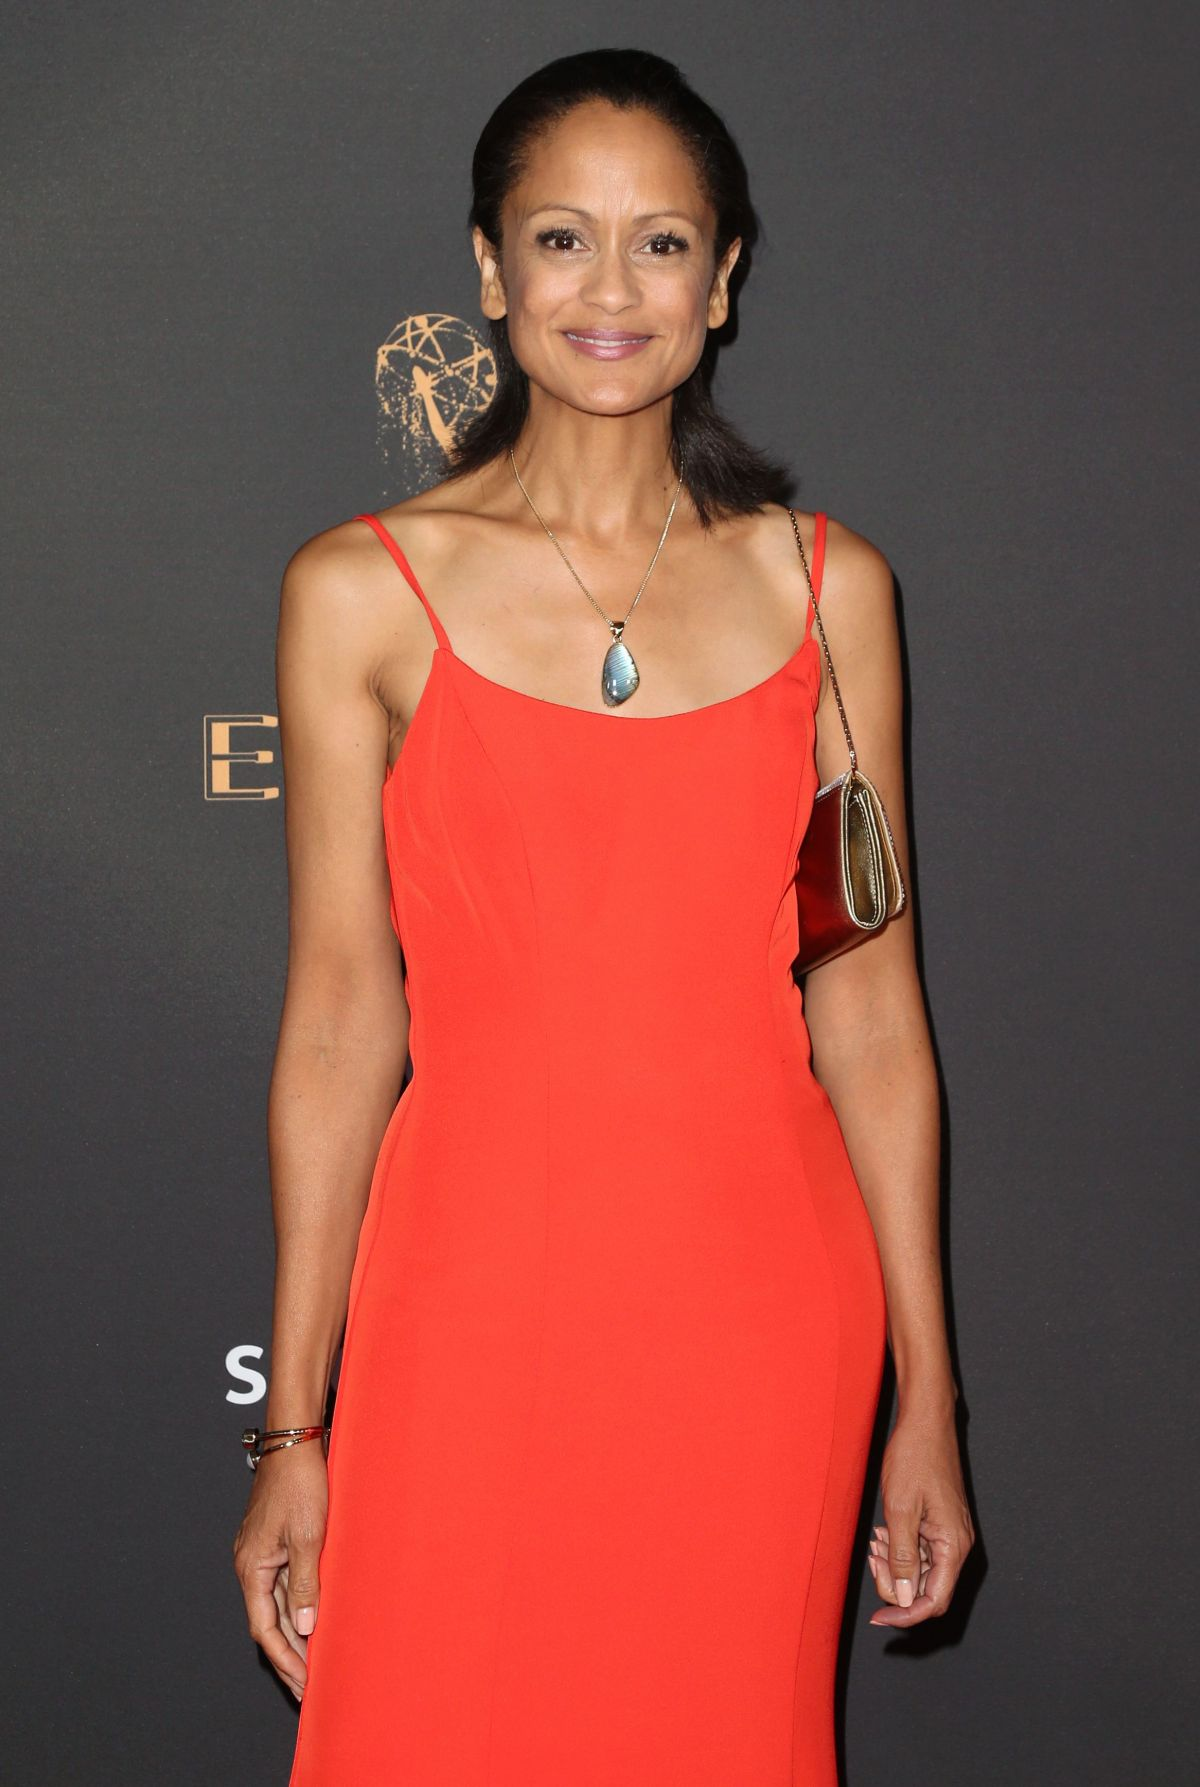 ANNE-MARIE JOHNSON at Dynamic & Diverse Emmy Reception in Los Angeles 09/12/2017